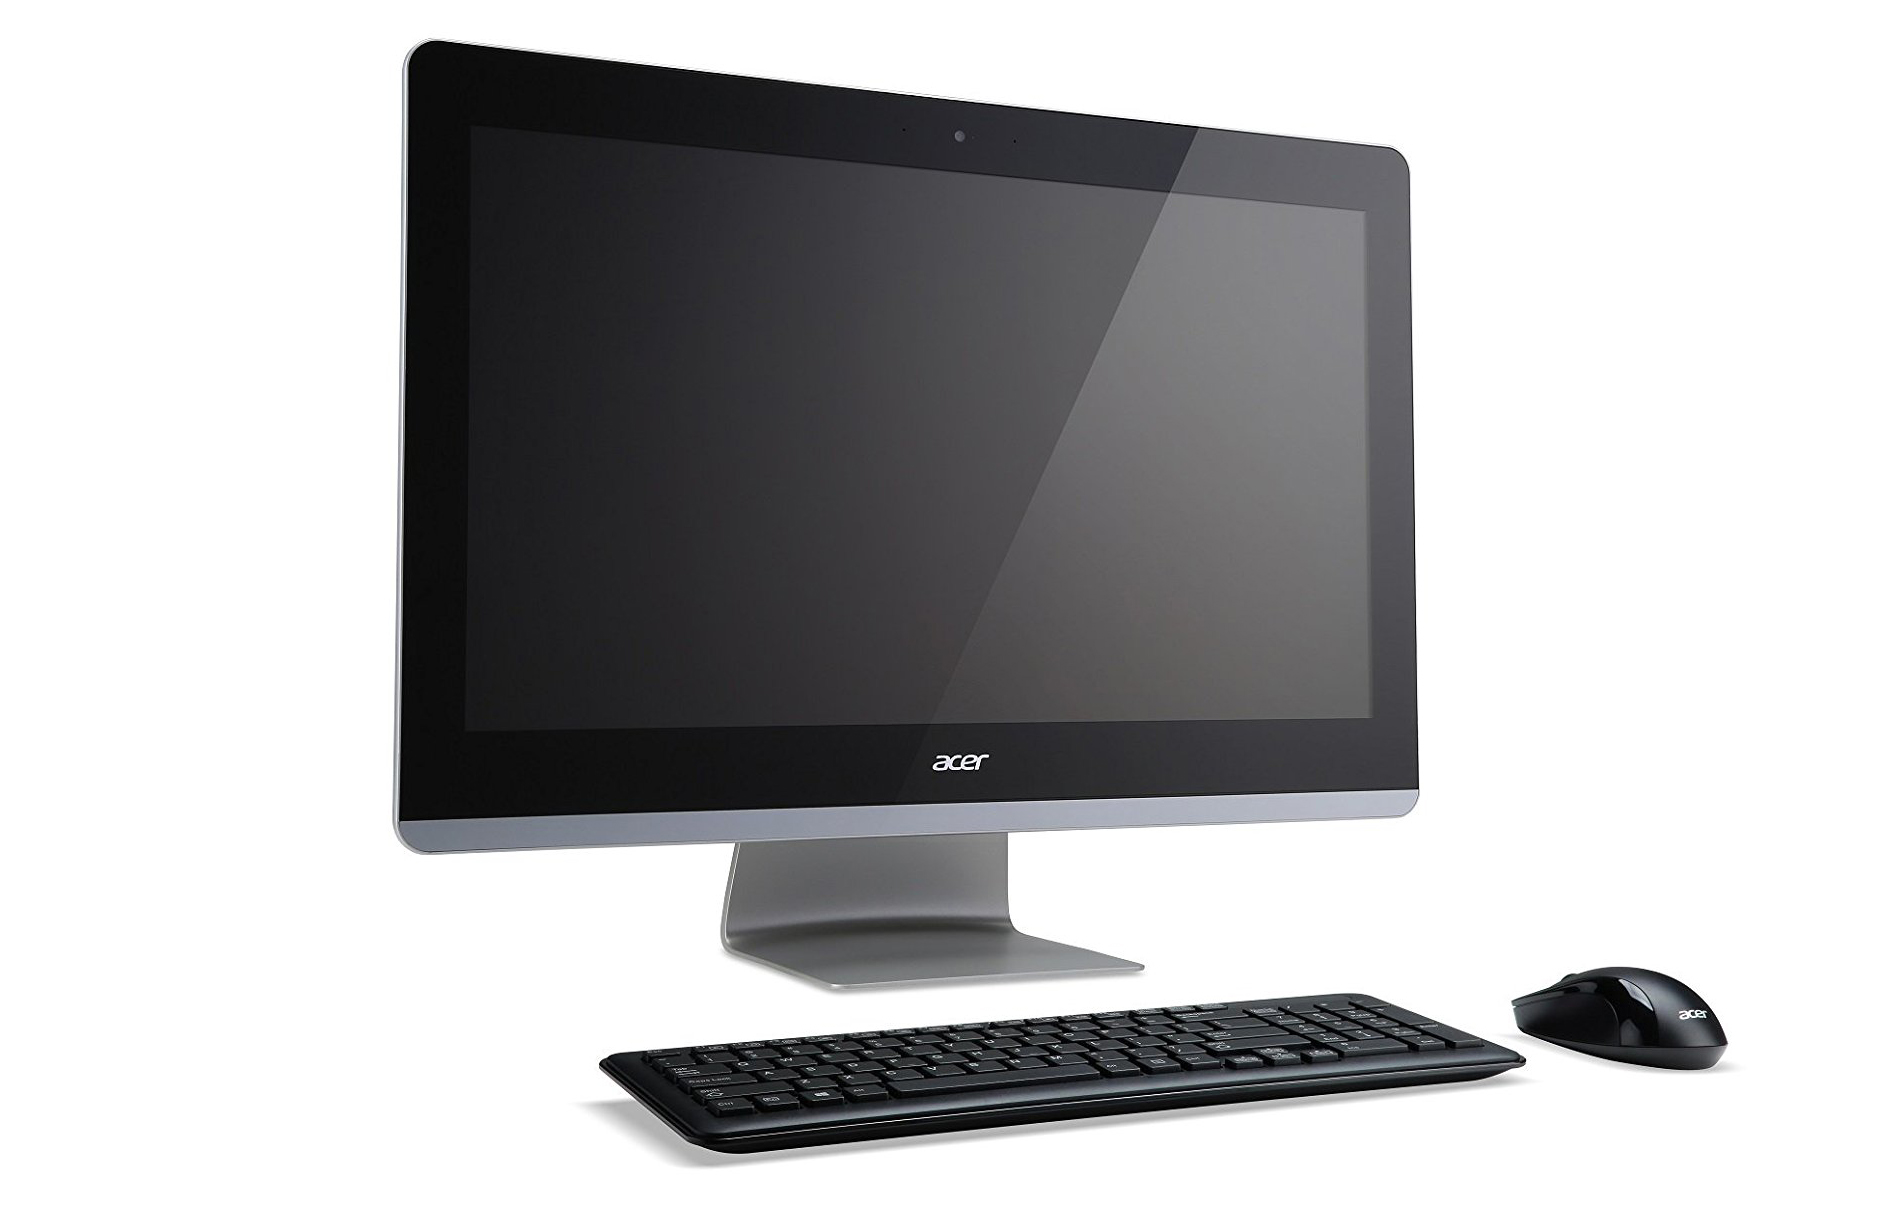 Súper Ordenador de sobremesa All in One Acer Aspire Z3